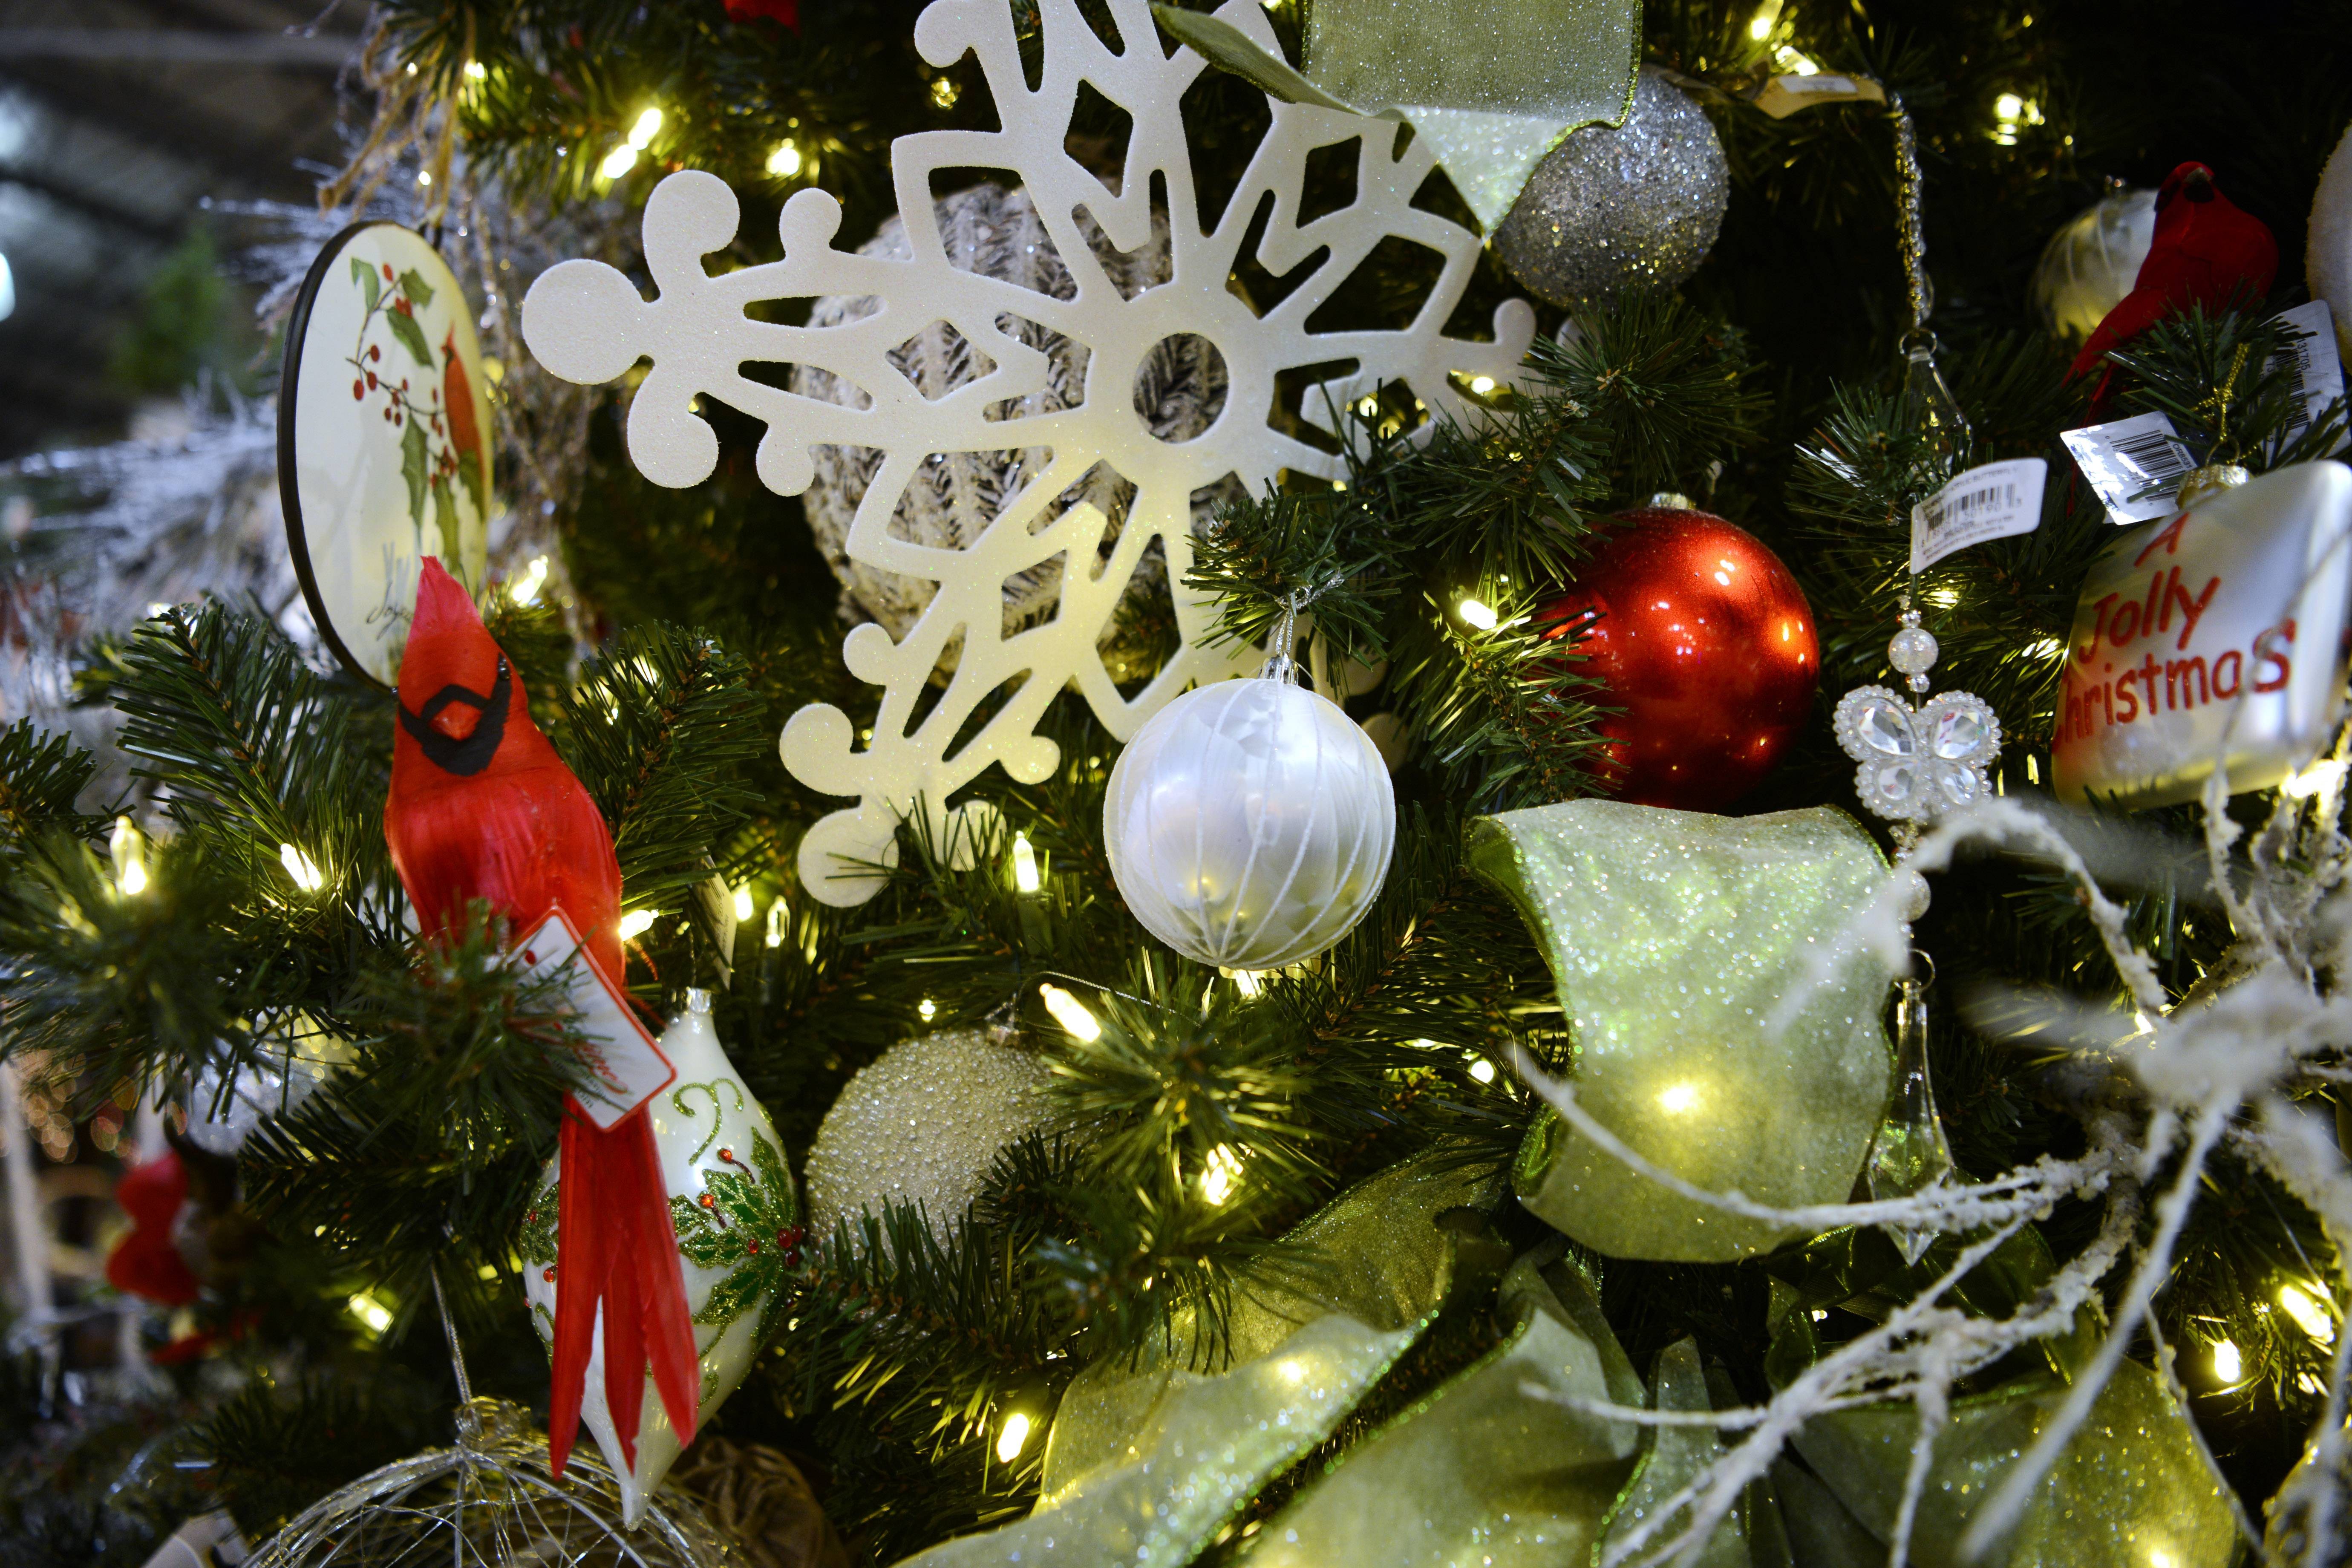 Winter Garden tree at Treetime Christmas Creations.